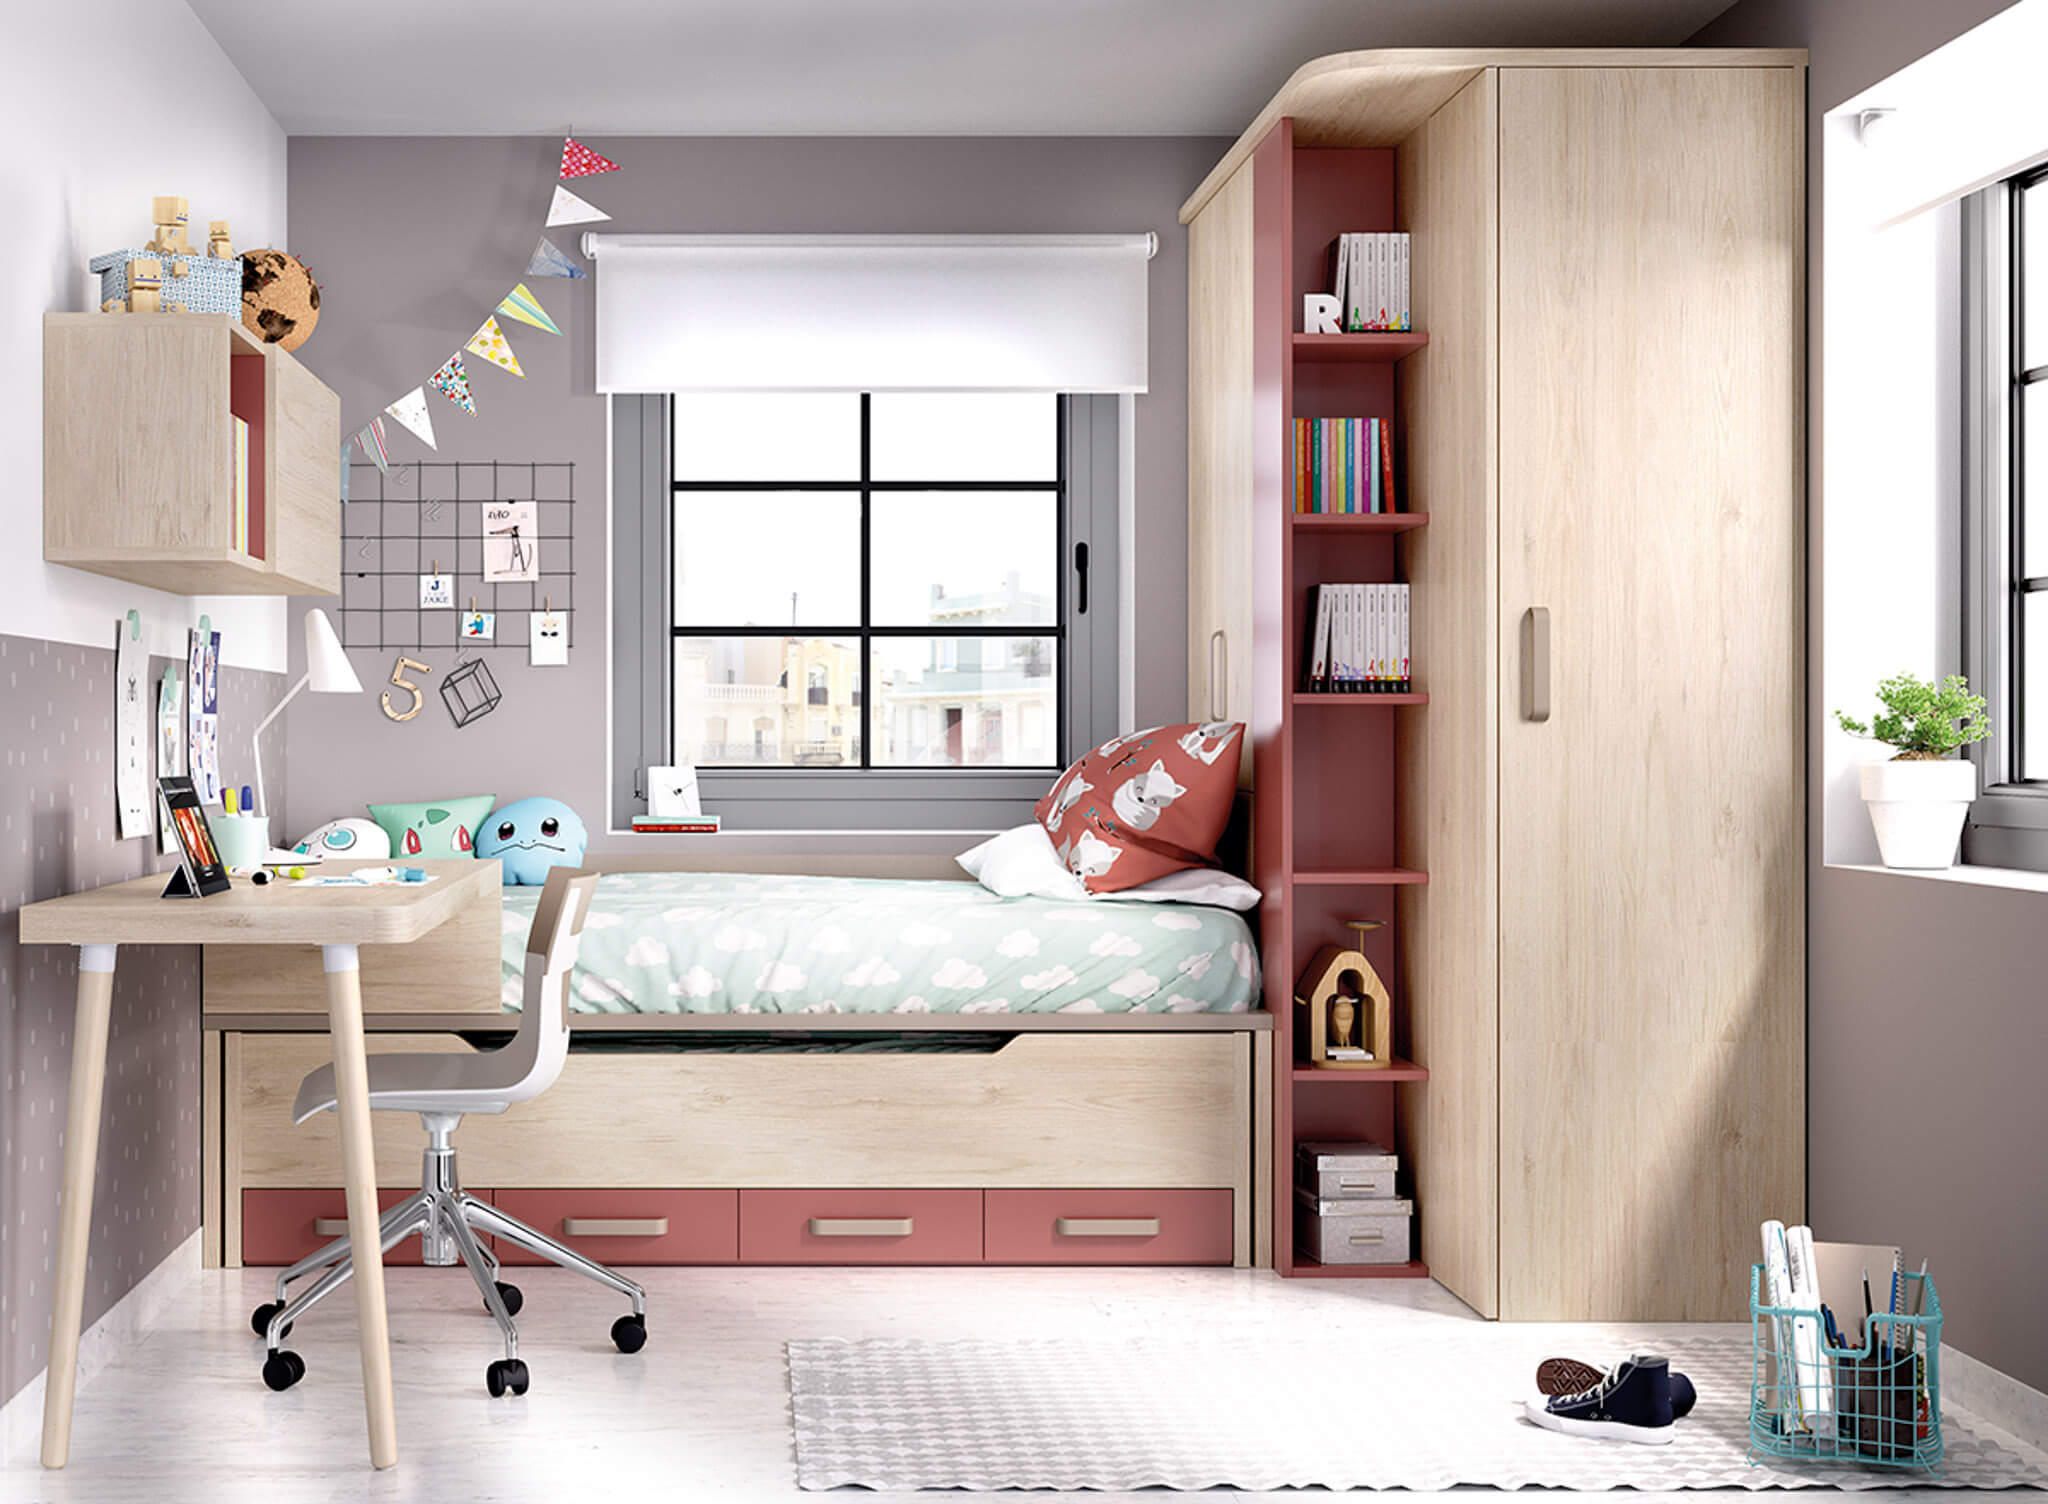 How to furnish a small bedroom